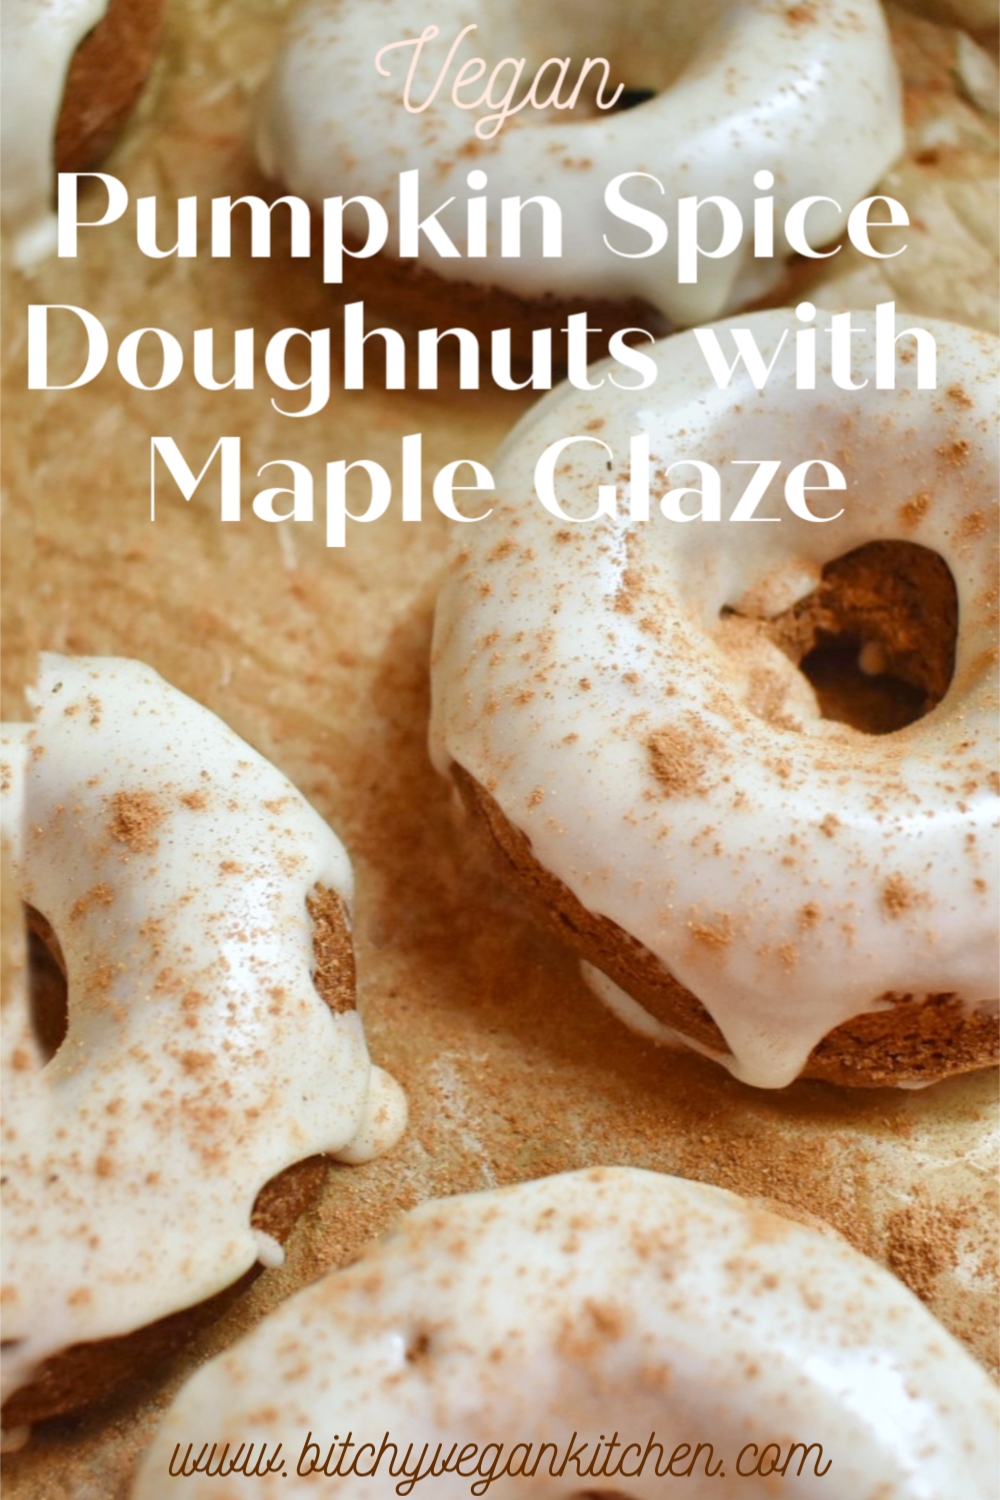 Vegan Pumpkin Spice Doughnuts with Maple Glaze - The Bitchy Baker